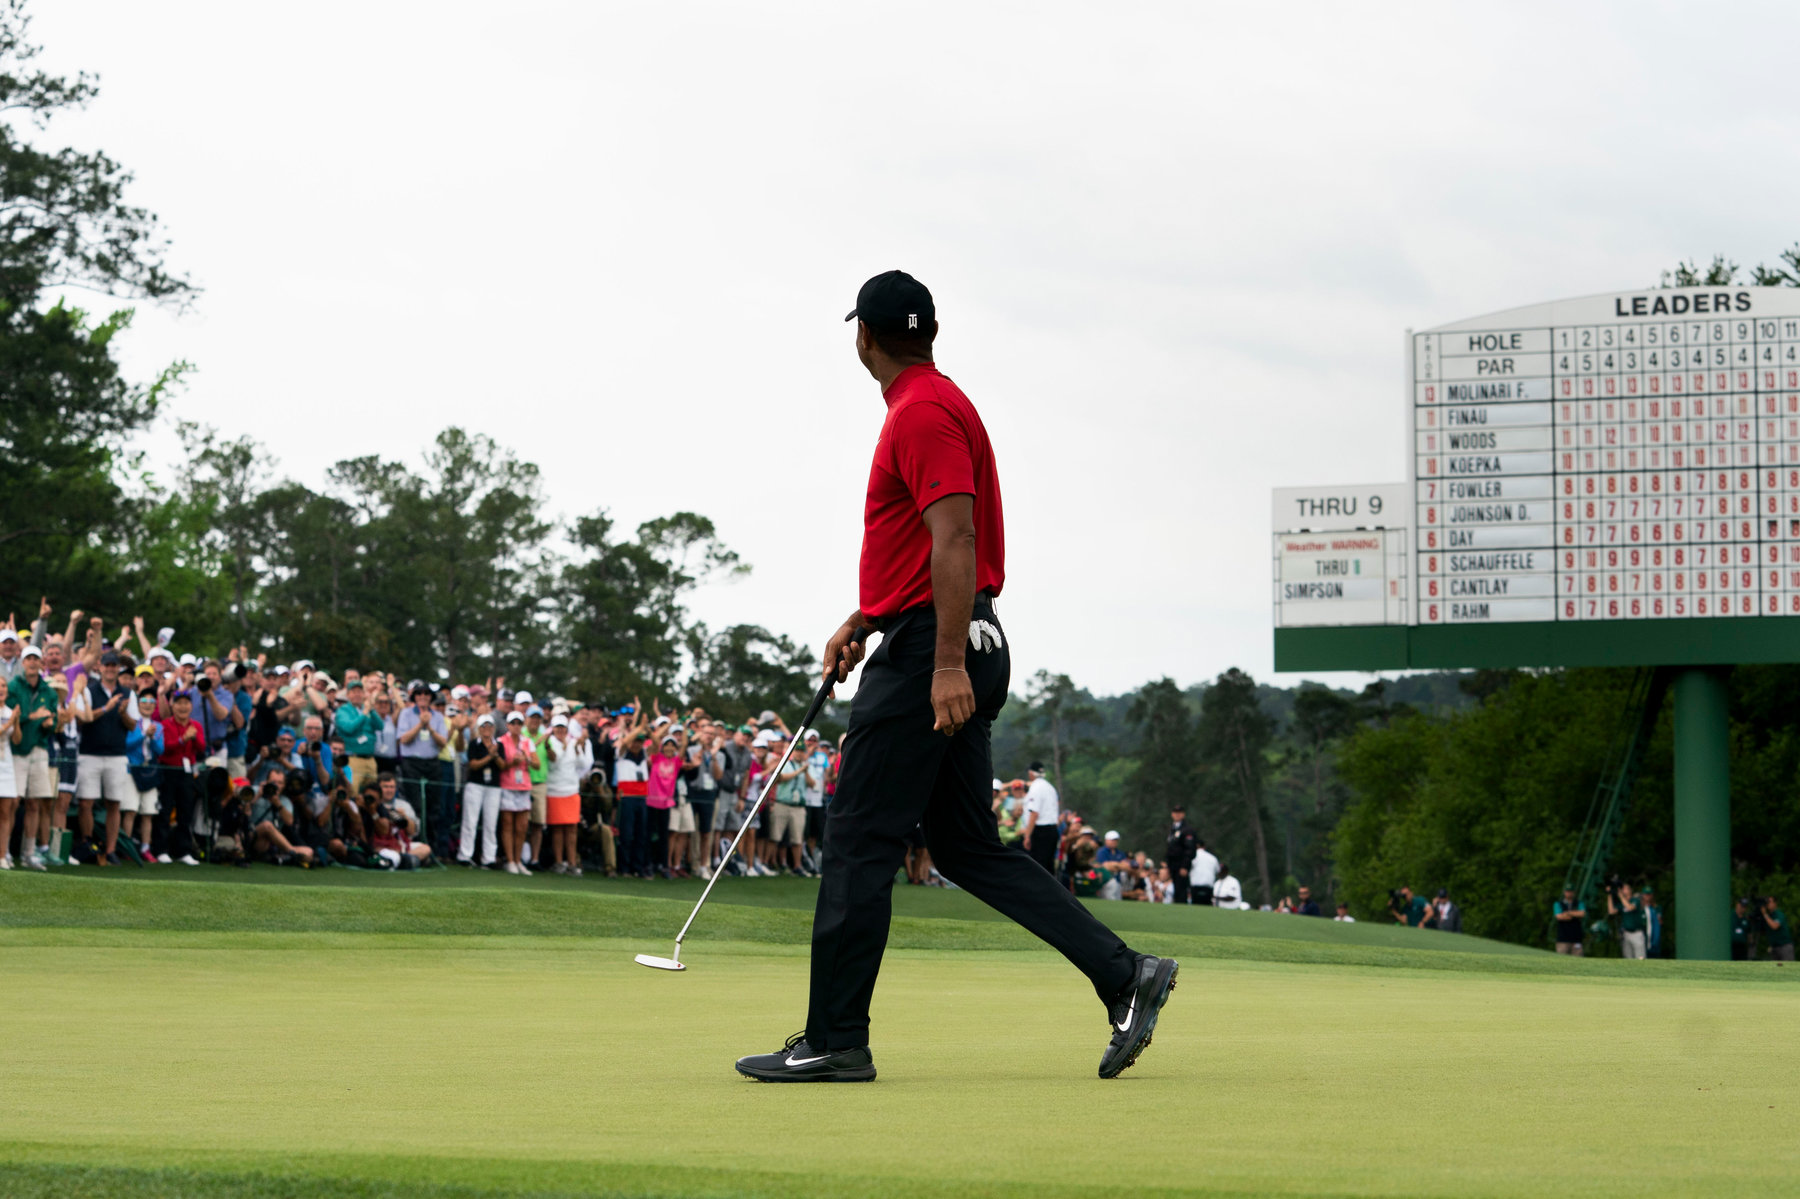 Watch Masters 2020 Golf Live Stream from the United States